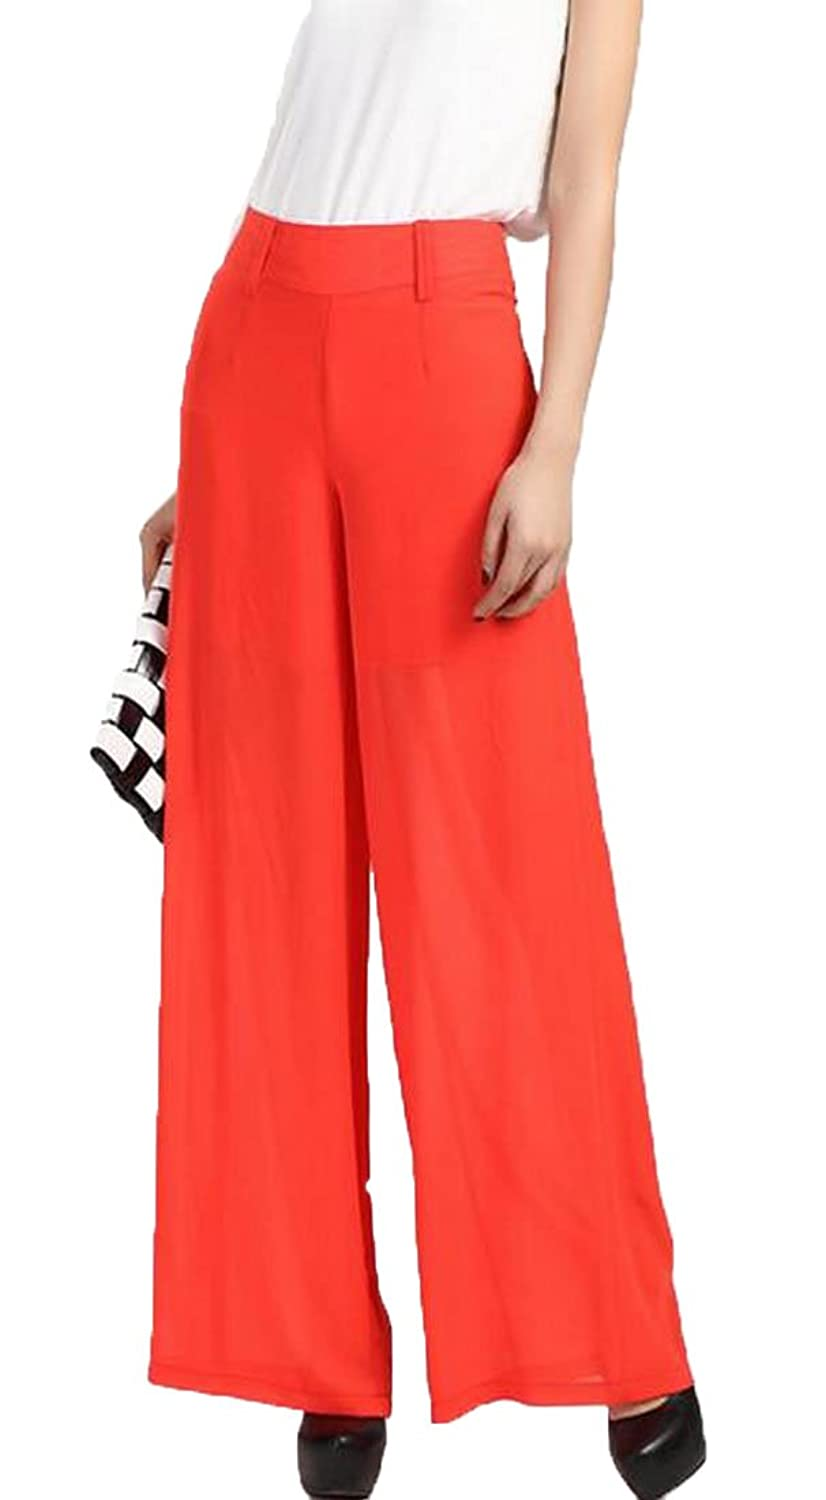 Generic Women's Stylish Accept Waist Western Trousers Palazzo Pants